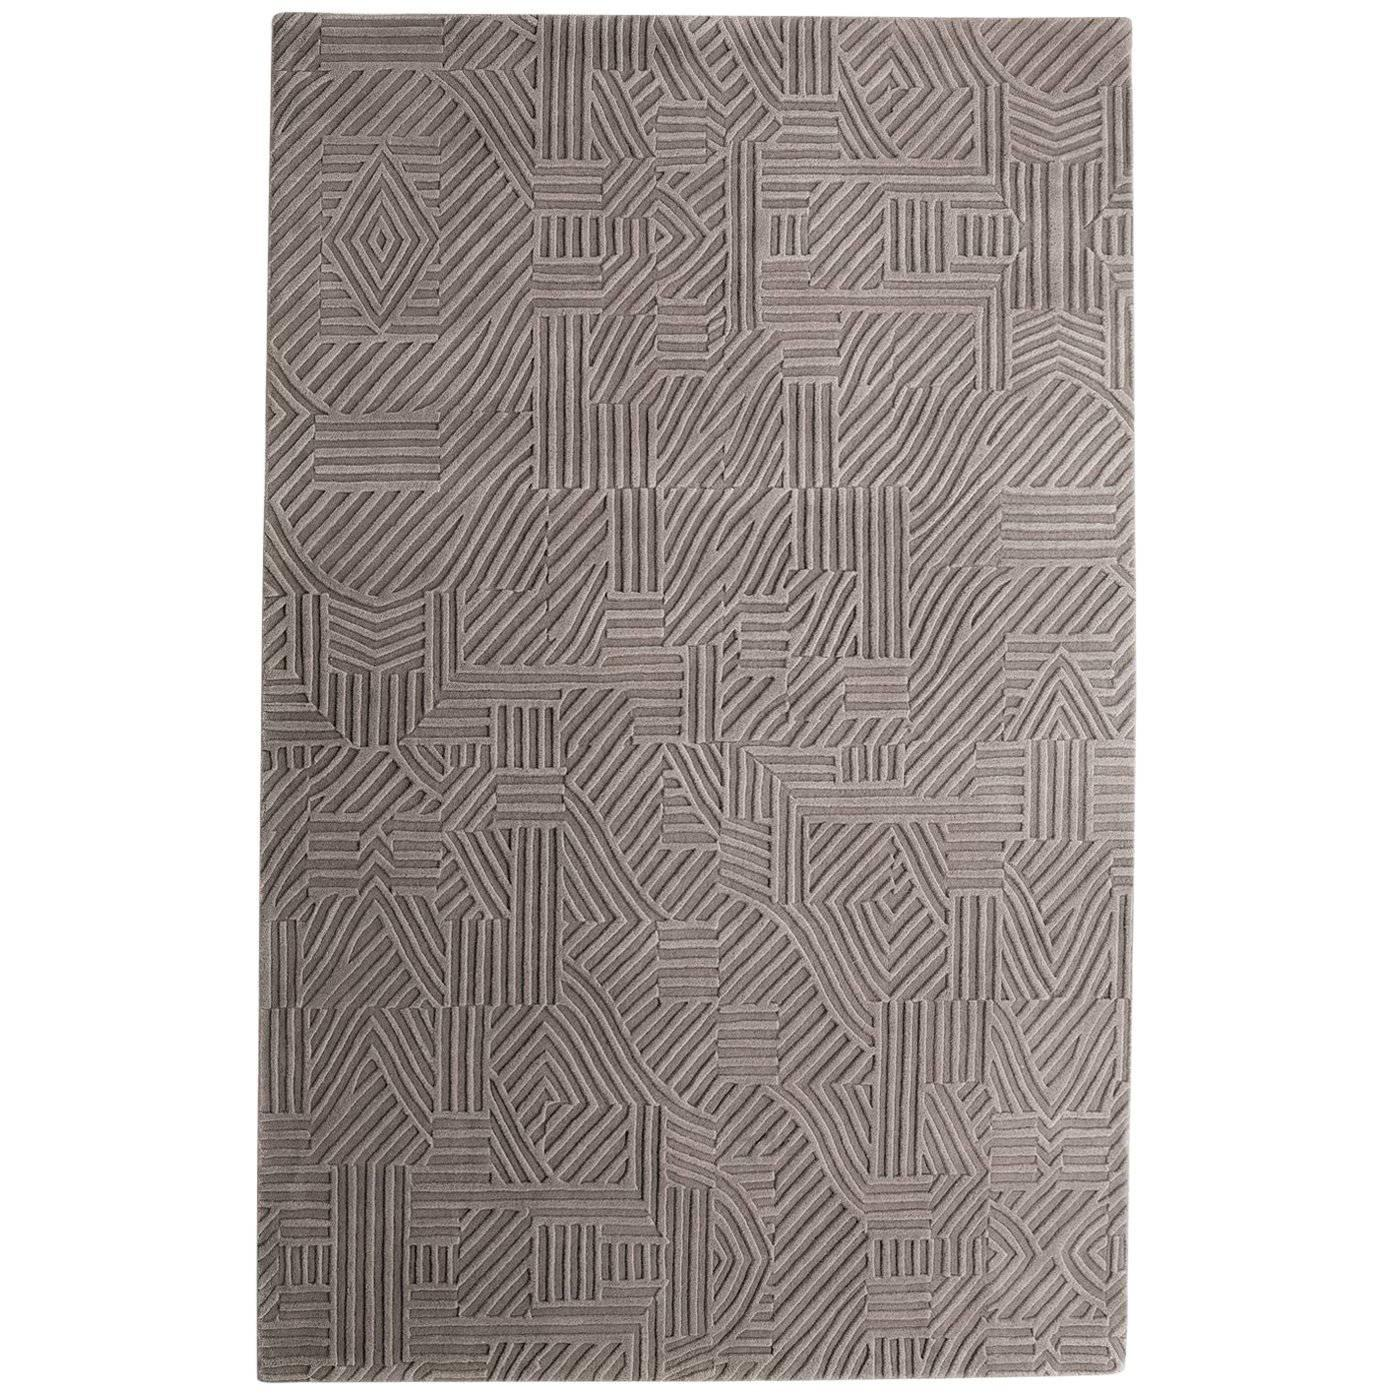 African Pattern One Area Rug in Hand-Tufted Wool by Milton Glaser Extra Large